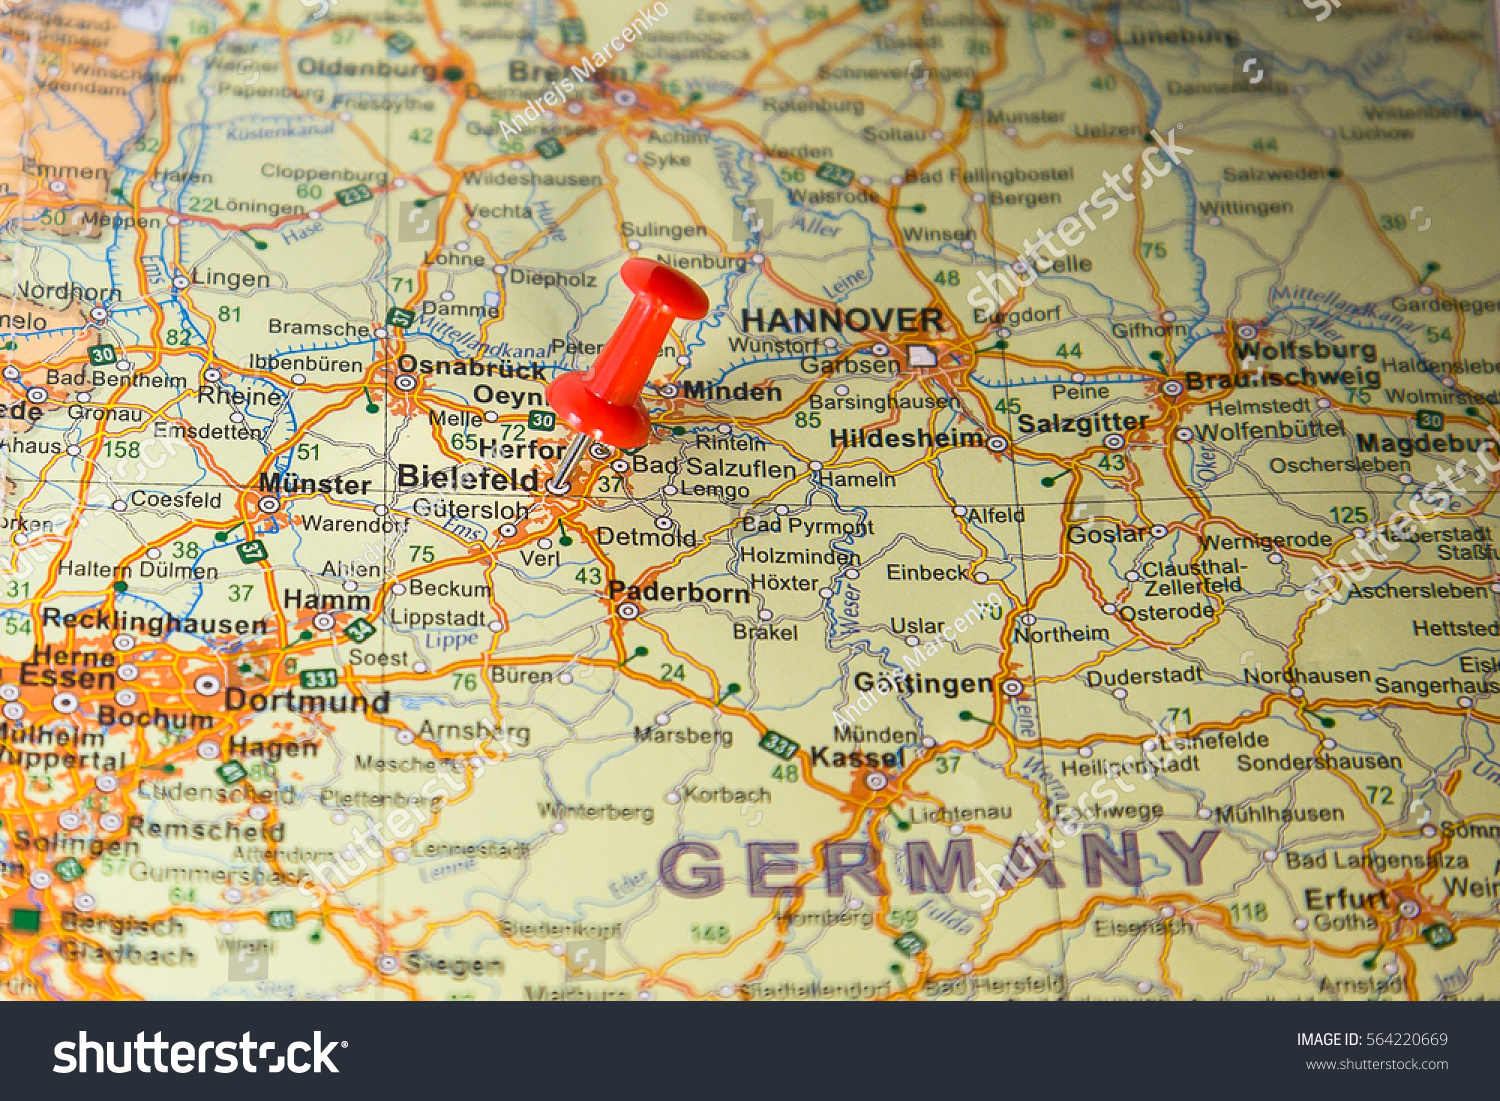 Bielefeld Pinned On Map Germany Stock Photo Royalty Free 564220669